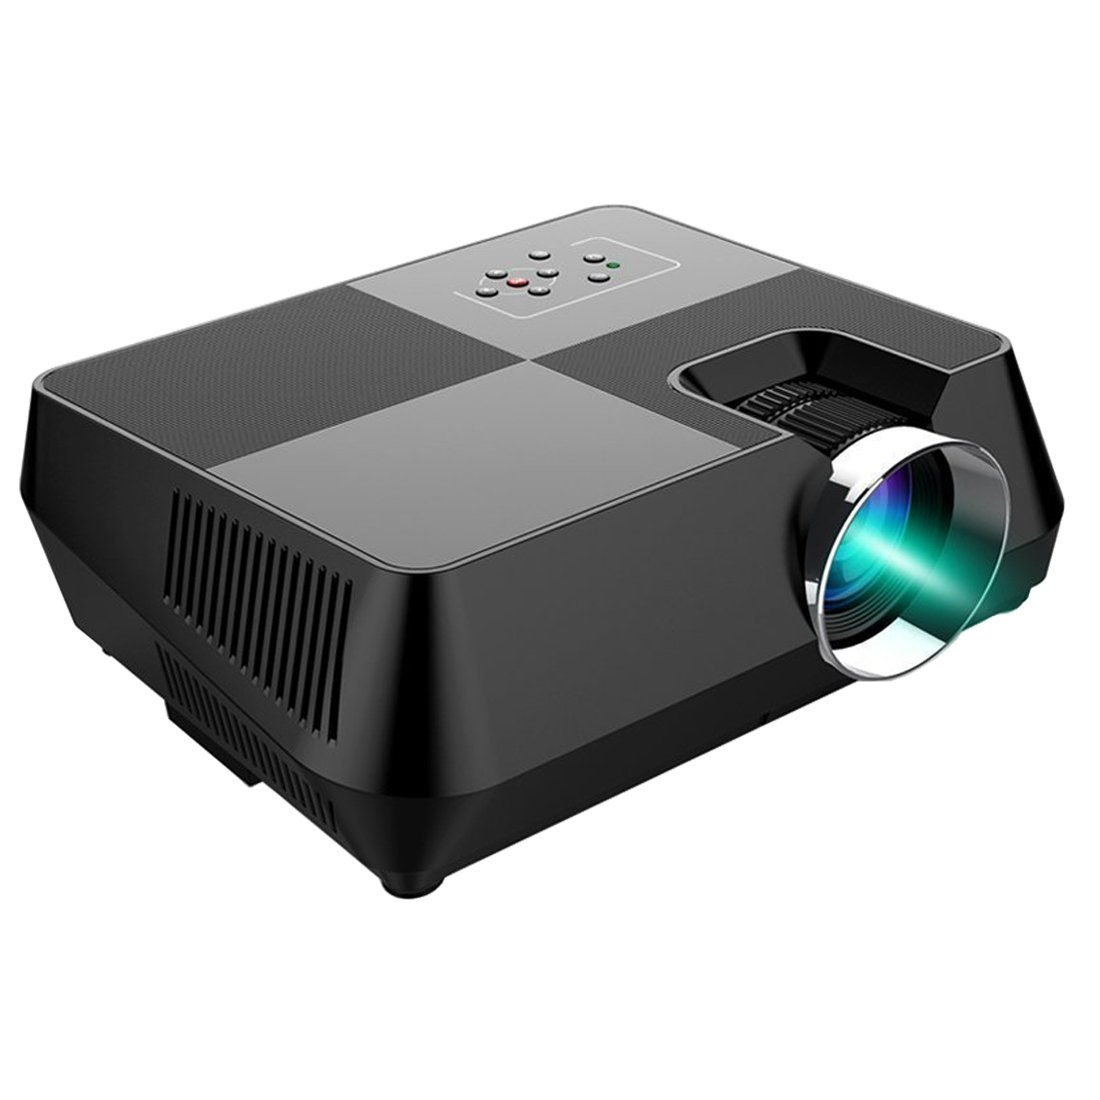 OAKLETREA 2000 Lumen Video Projector Directly Mirroring Smartphone Content via USB Cable(iPhone and Android Phone Compatible),Portable LED Mini Projector Supports 1080P HDMI USB VGA AV for Movie,Games